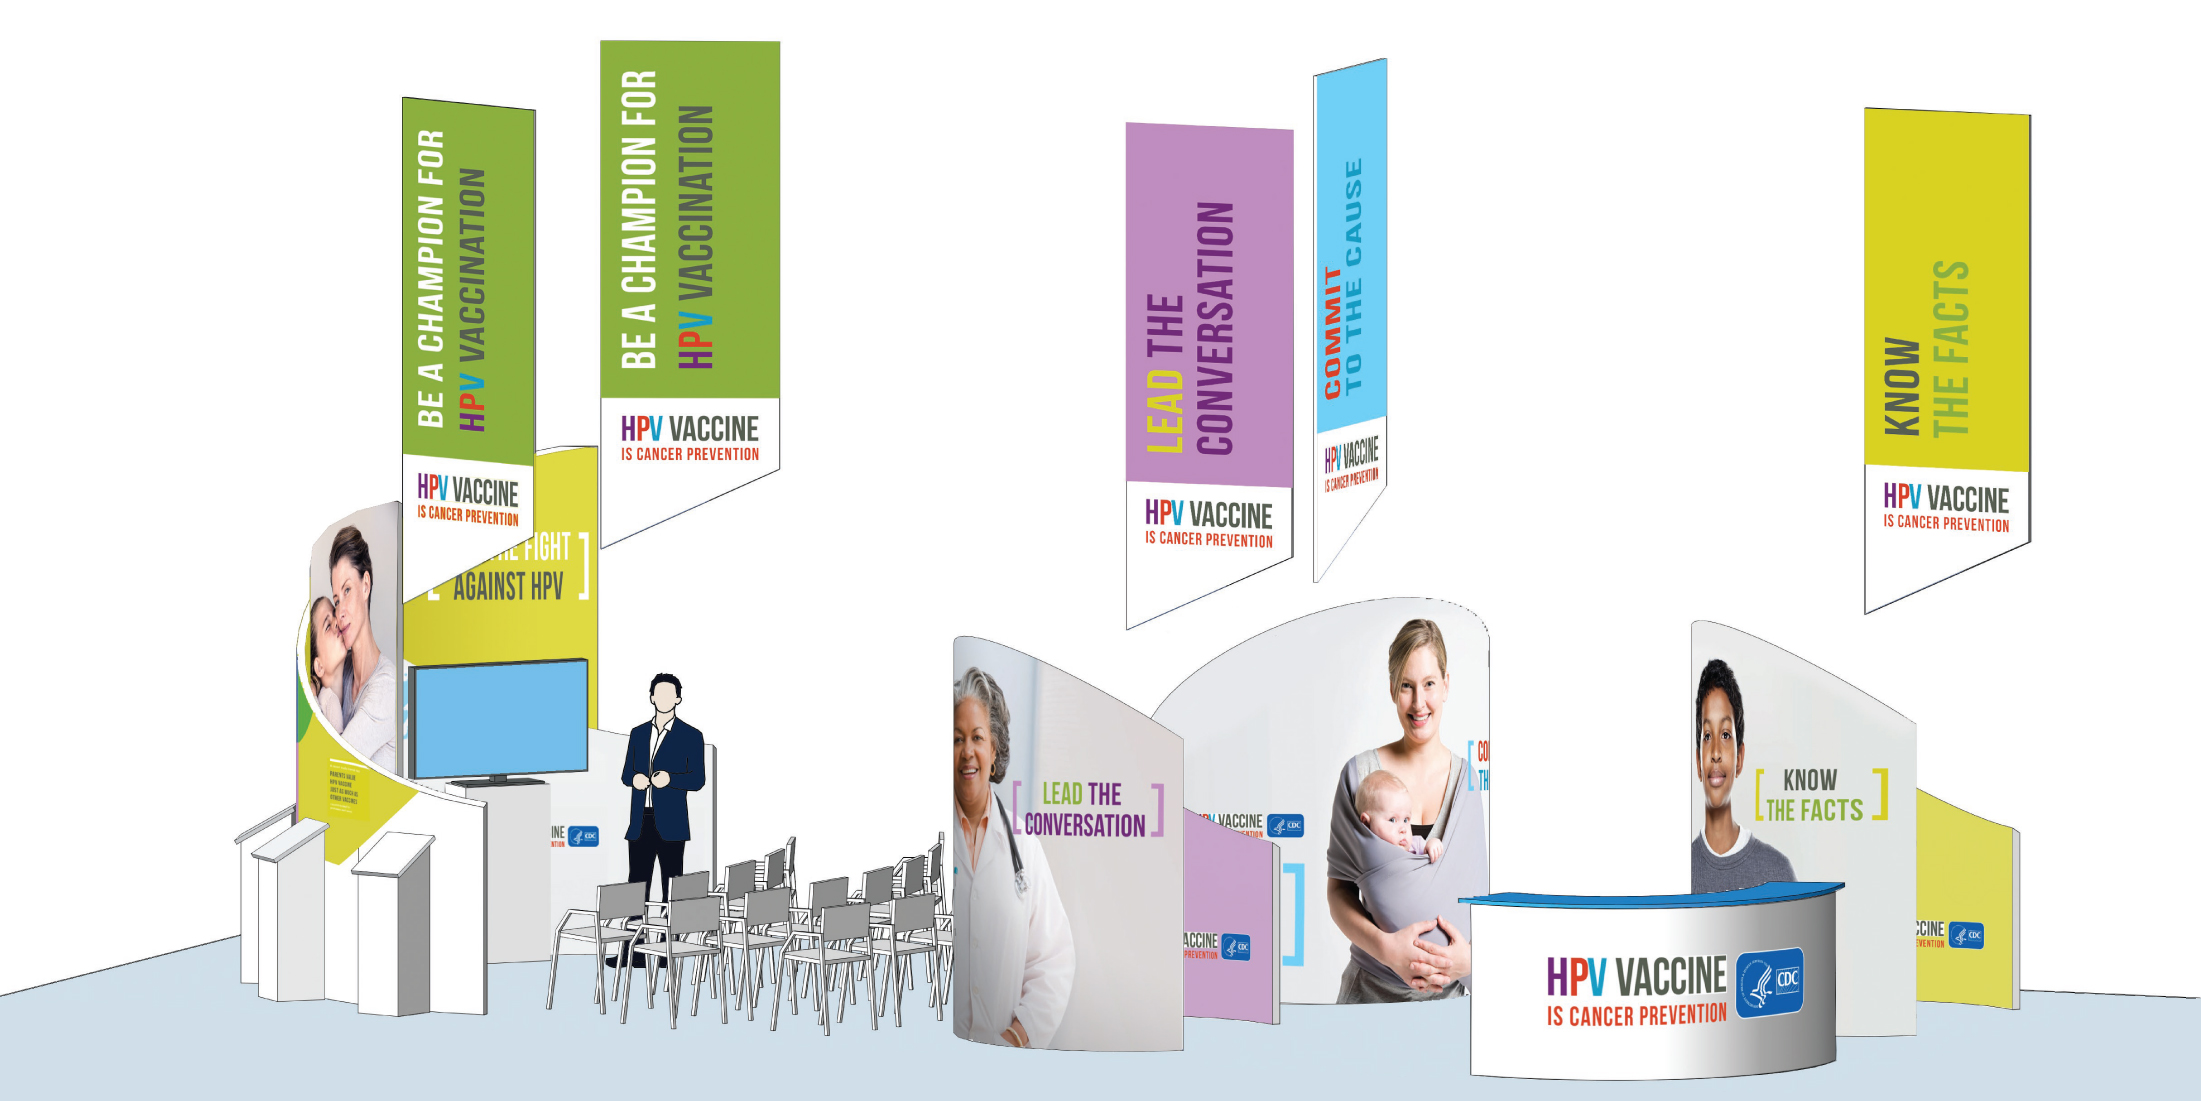 Hpv Cdc Events Conferences 2